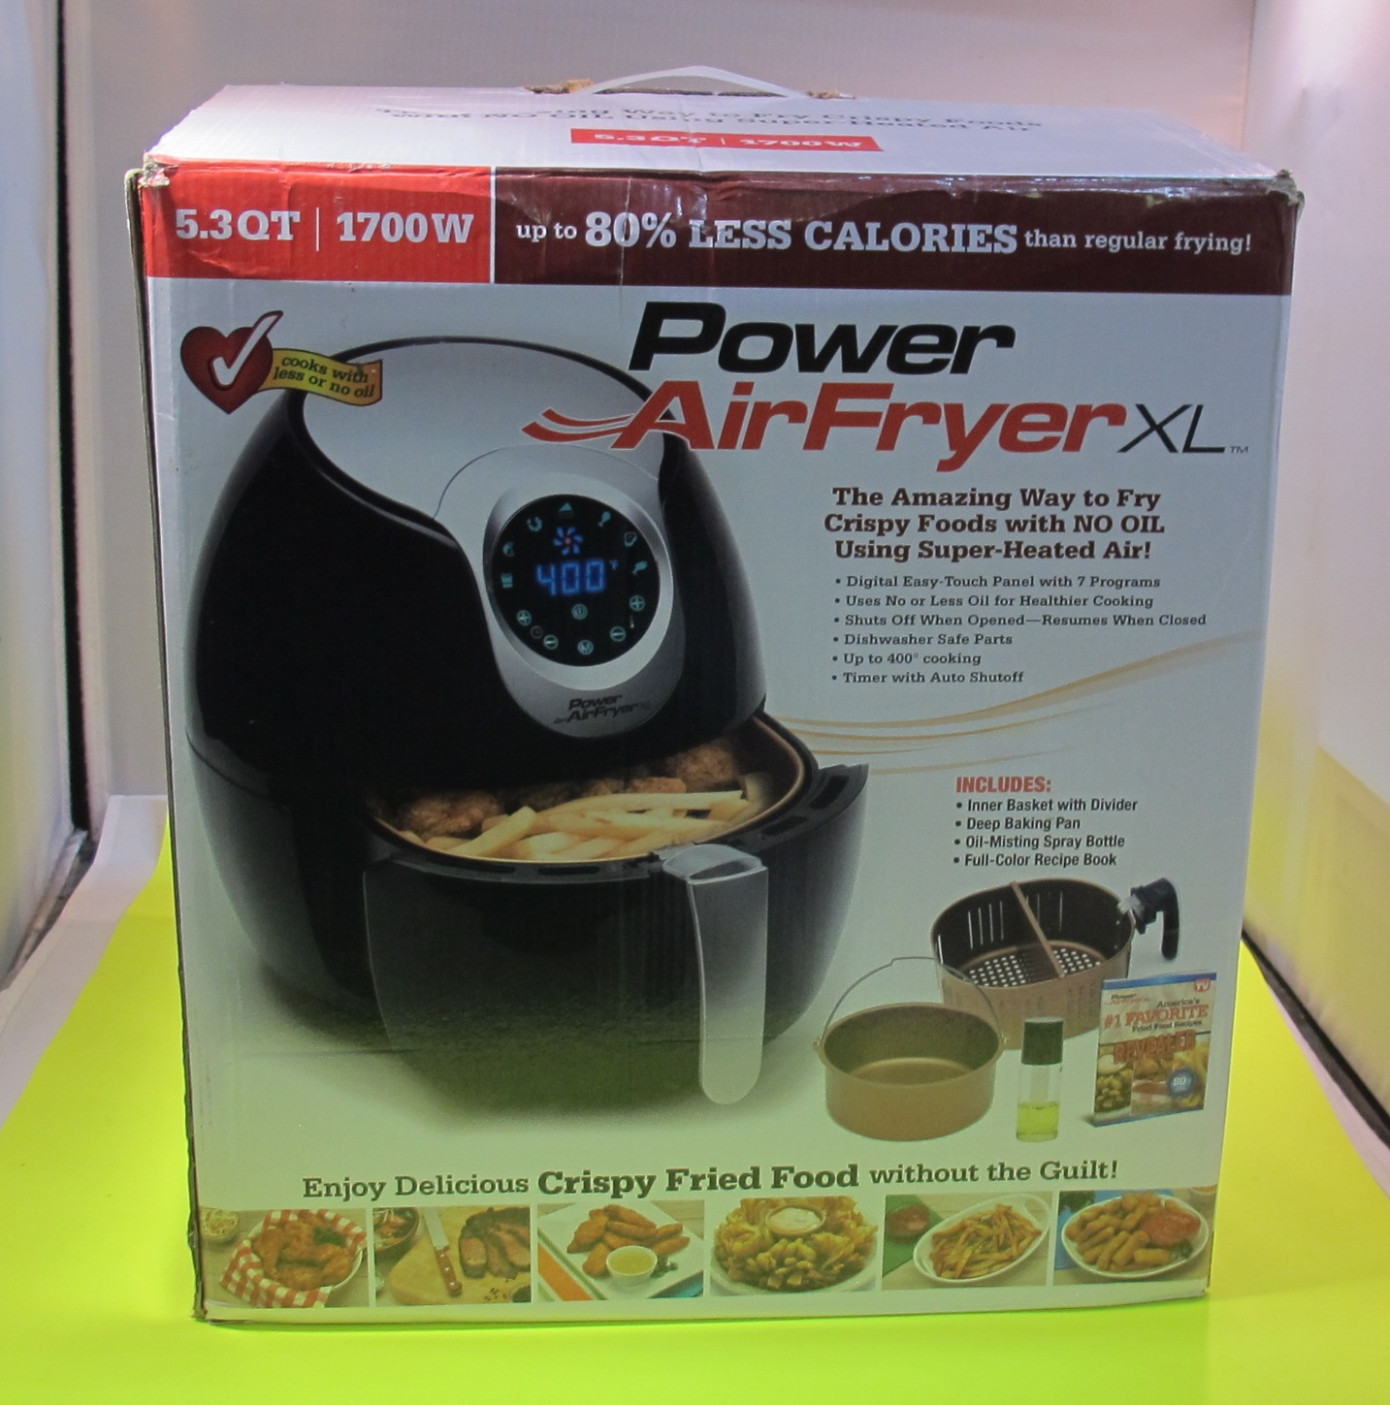 Details about Power AirFryer XL 10W Style Fry Pot Airfryer - Black - power air fryer xl healthy recipes